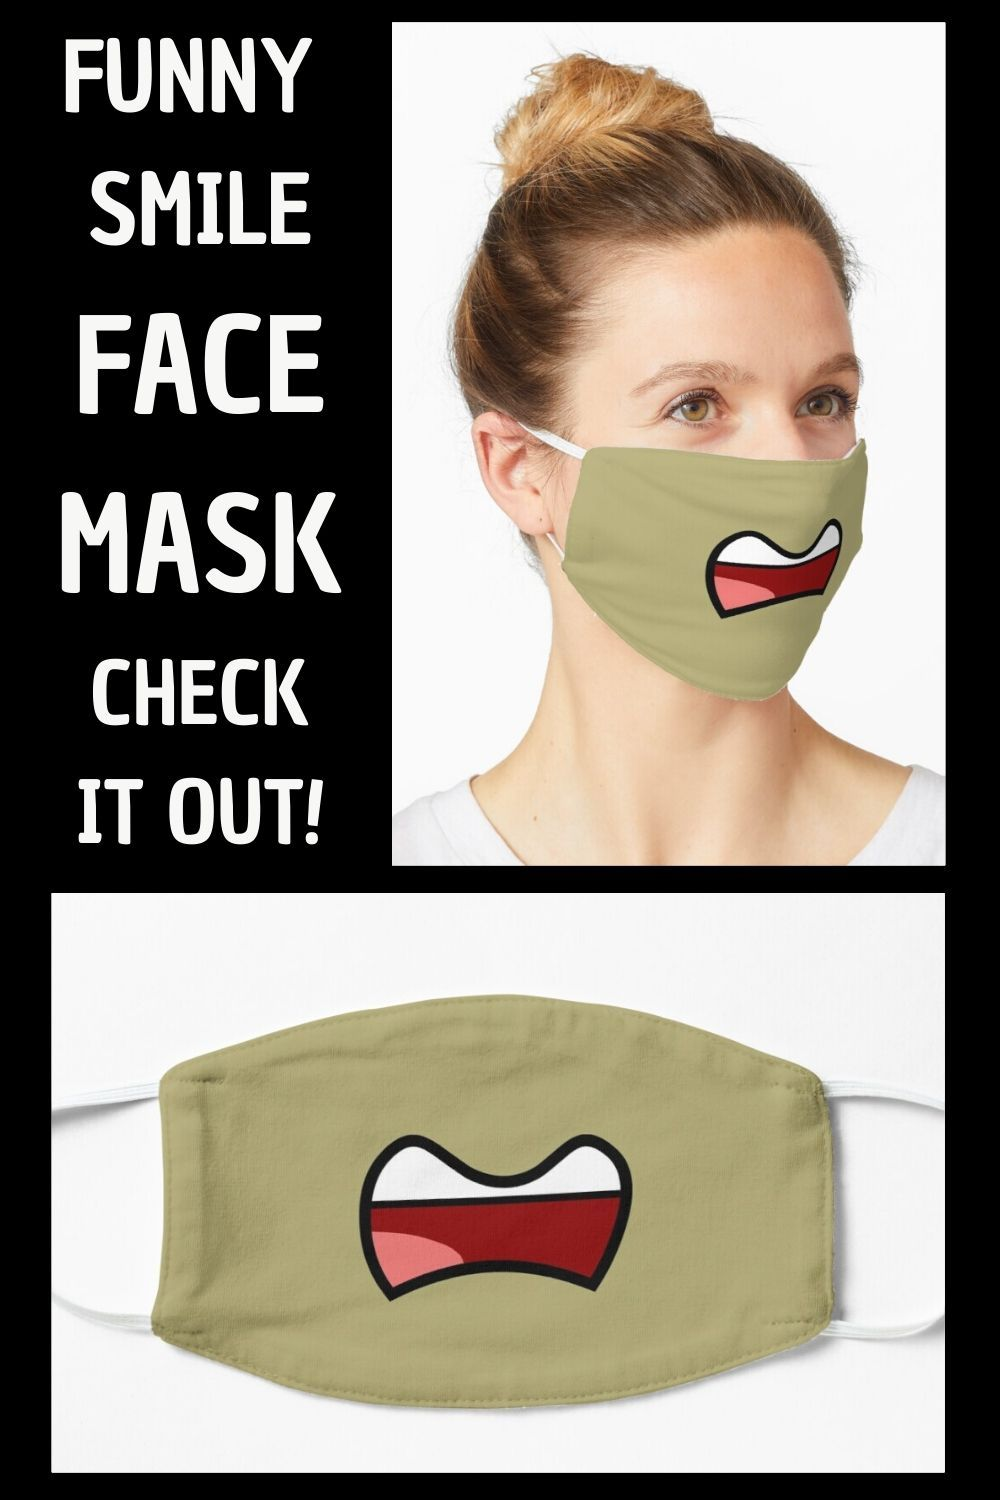 Funny Talking Mouth Mask By Aj Liber Funny Face Mask Face Mask Mask For Kids